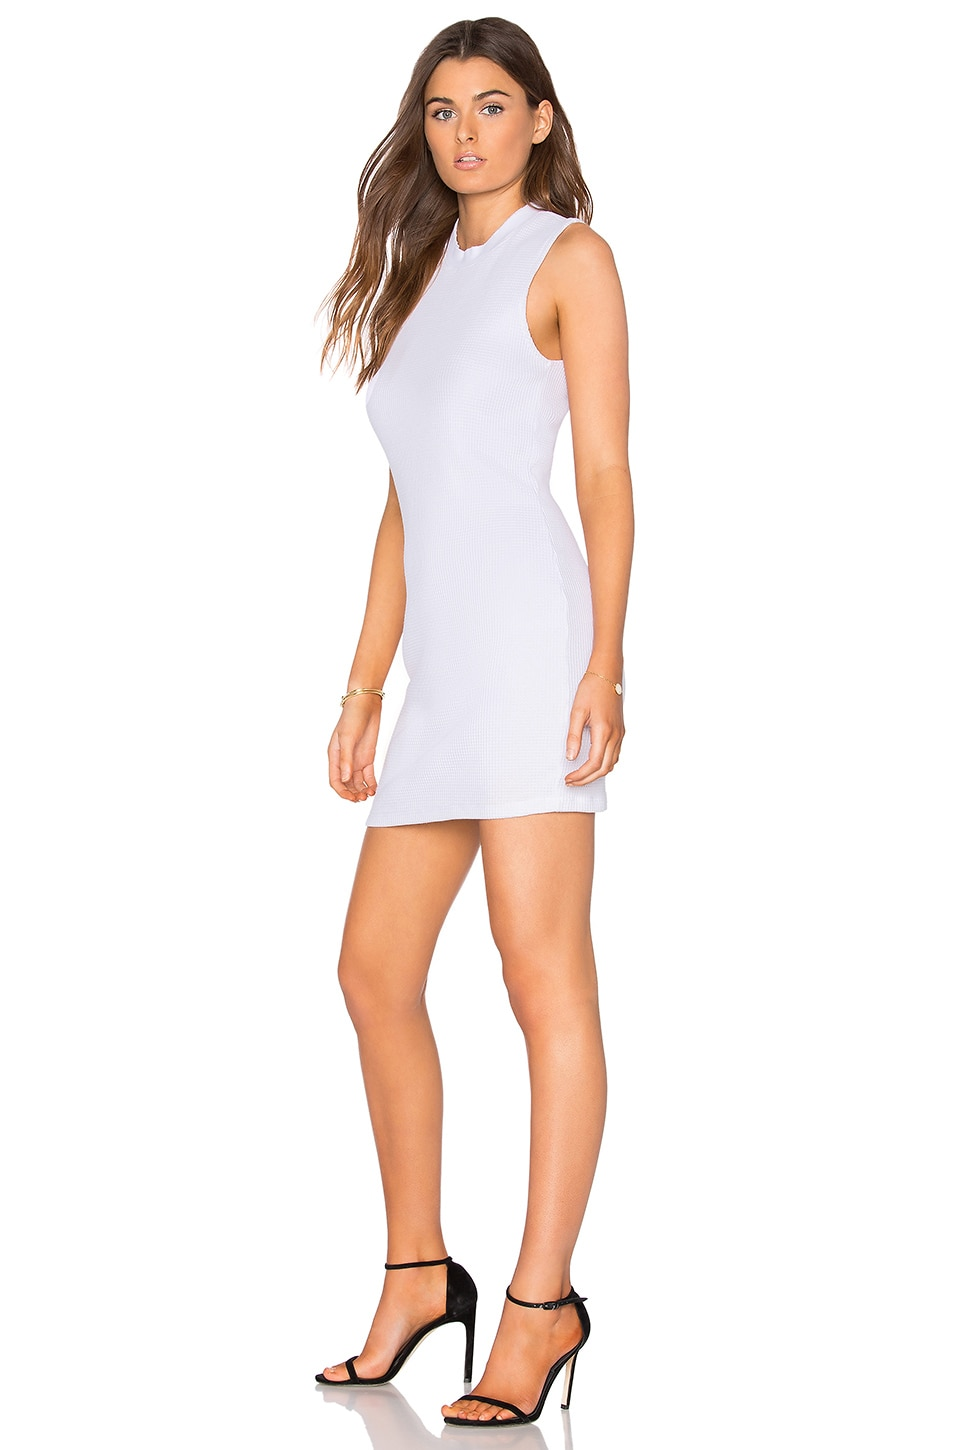 The Monaco Mini Dress by COTTON CITIZEN